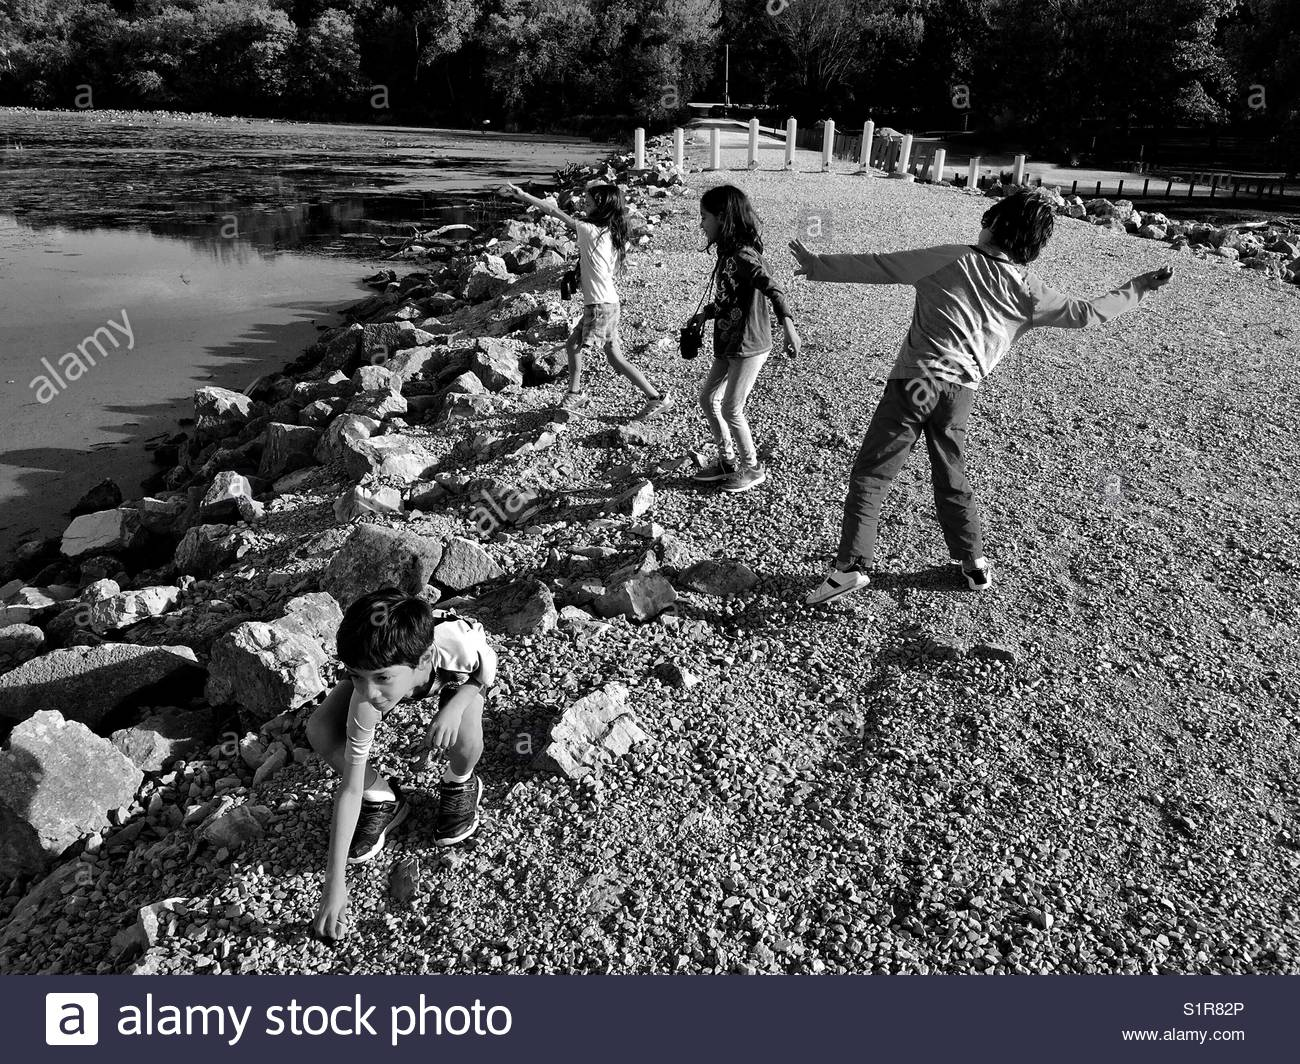 Kids amusing themselves along the Mississippi River. - Stock Image